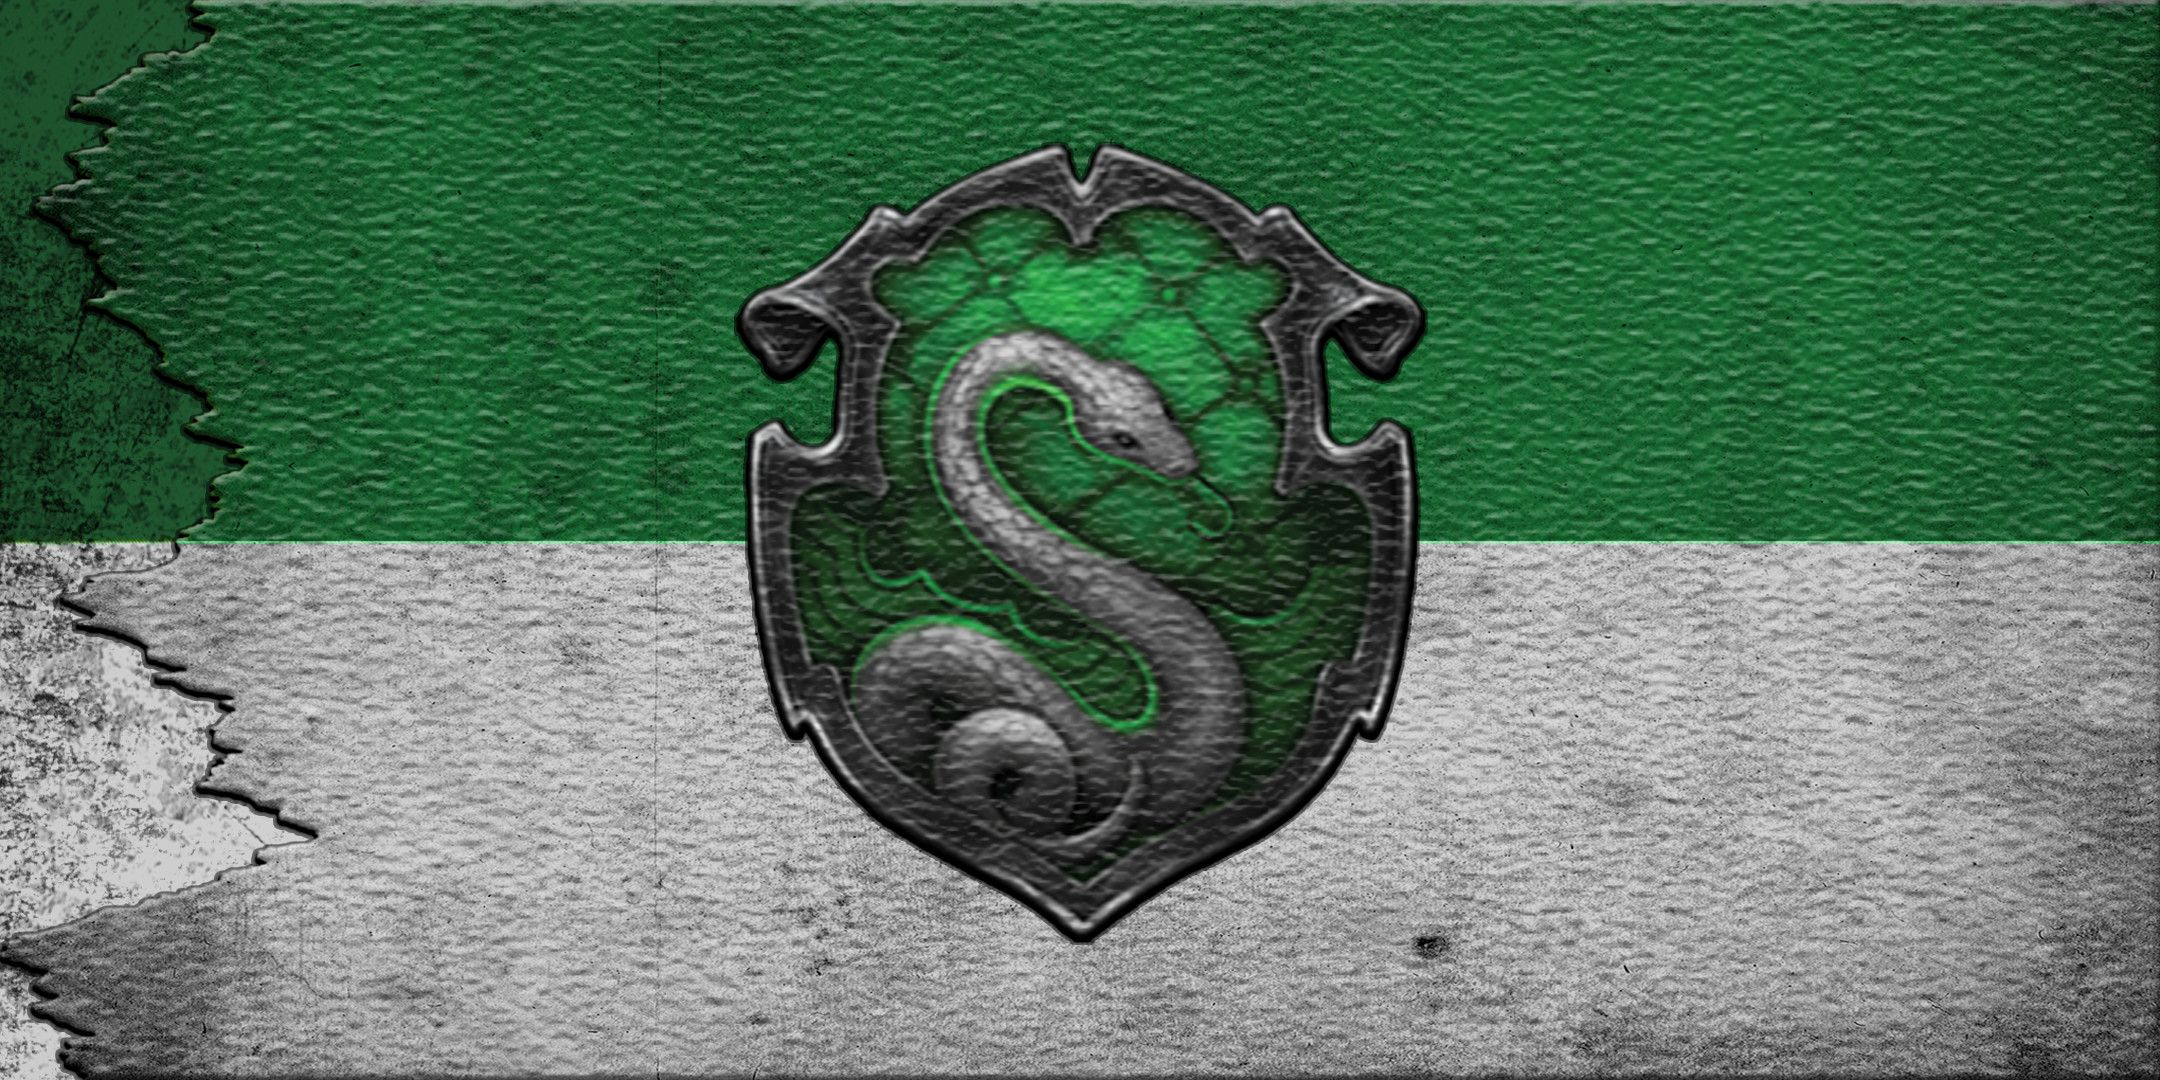 Slytherin Wallpaper Wallpaper Sun Please contact us if you want to publish a slytherin wallpaper on our site. slytherin wallpaper wallpaper sun